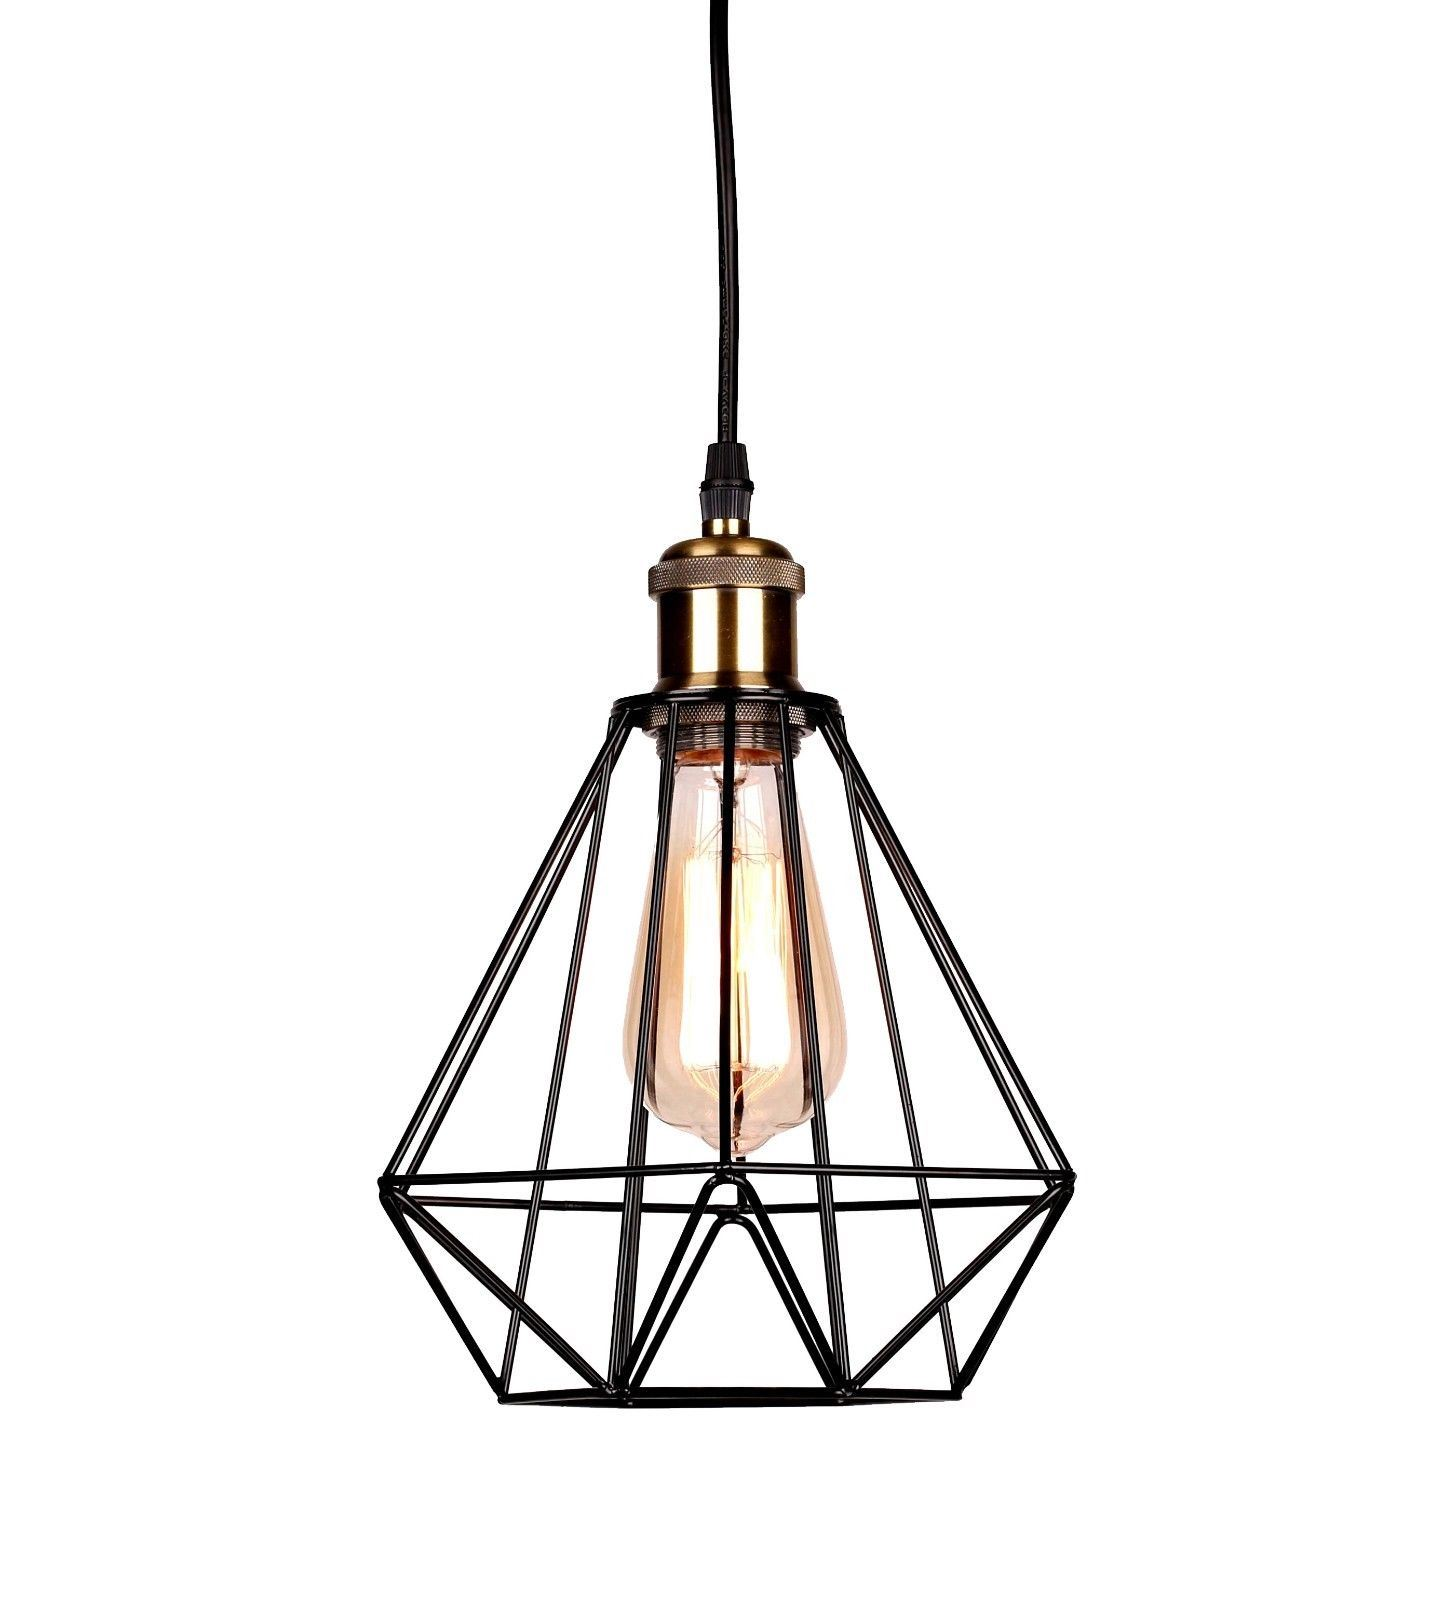 Modern Ceiling Pendant Light Shades Vintage Lamp